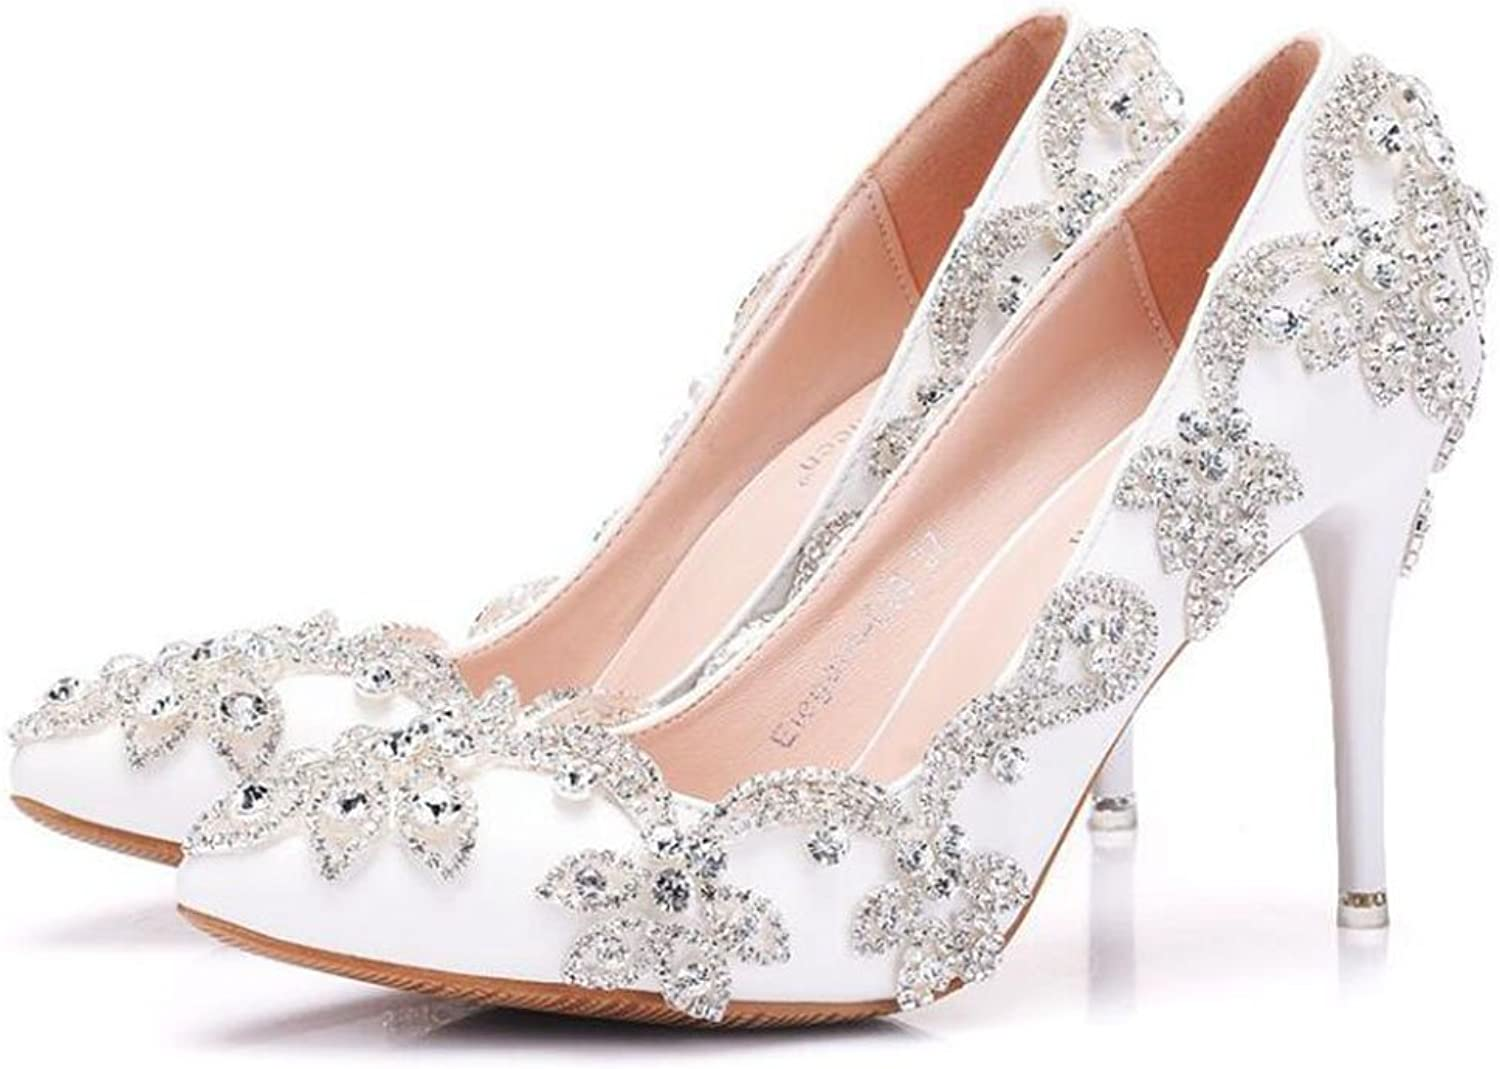 FLYSXP Large Size Rhinestone High Heel Women's Fine with Pointed Single shoes Wedding shoes Female Dinner Dress shoes 34-42 Yards Women's shoes (color   White, Size   35)